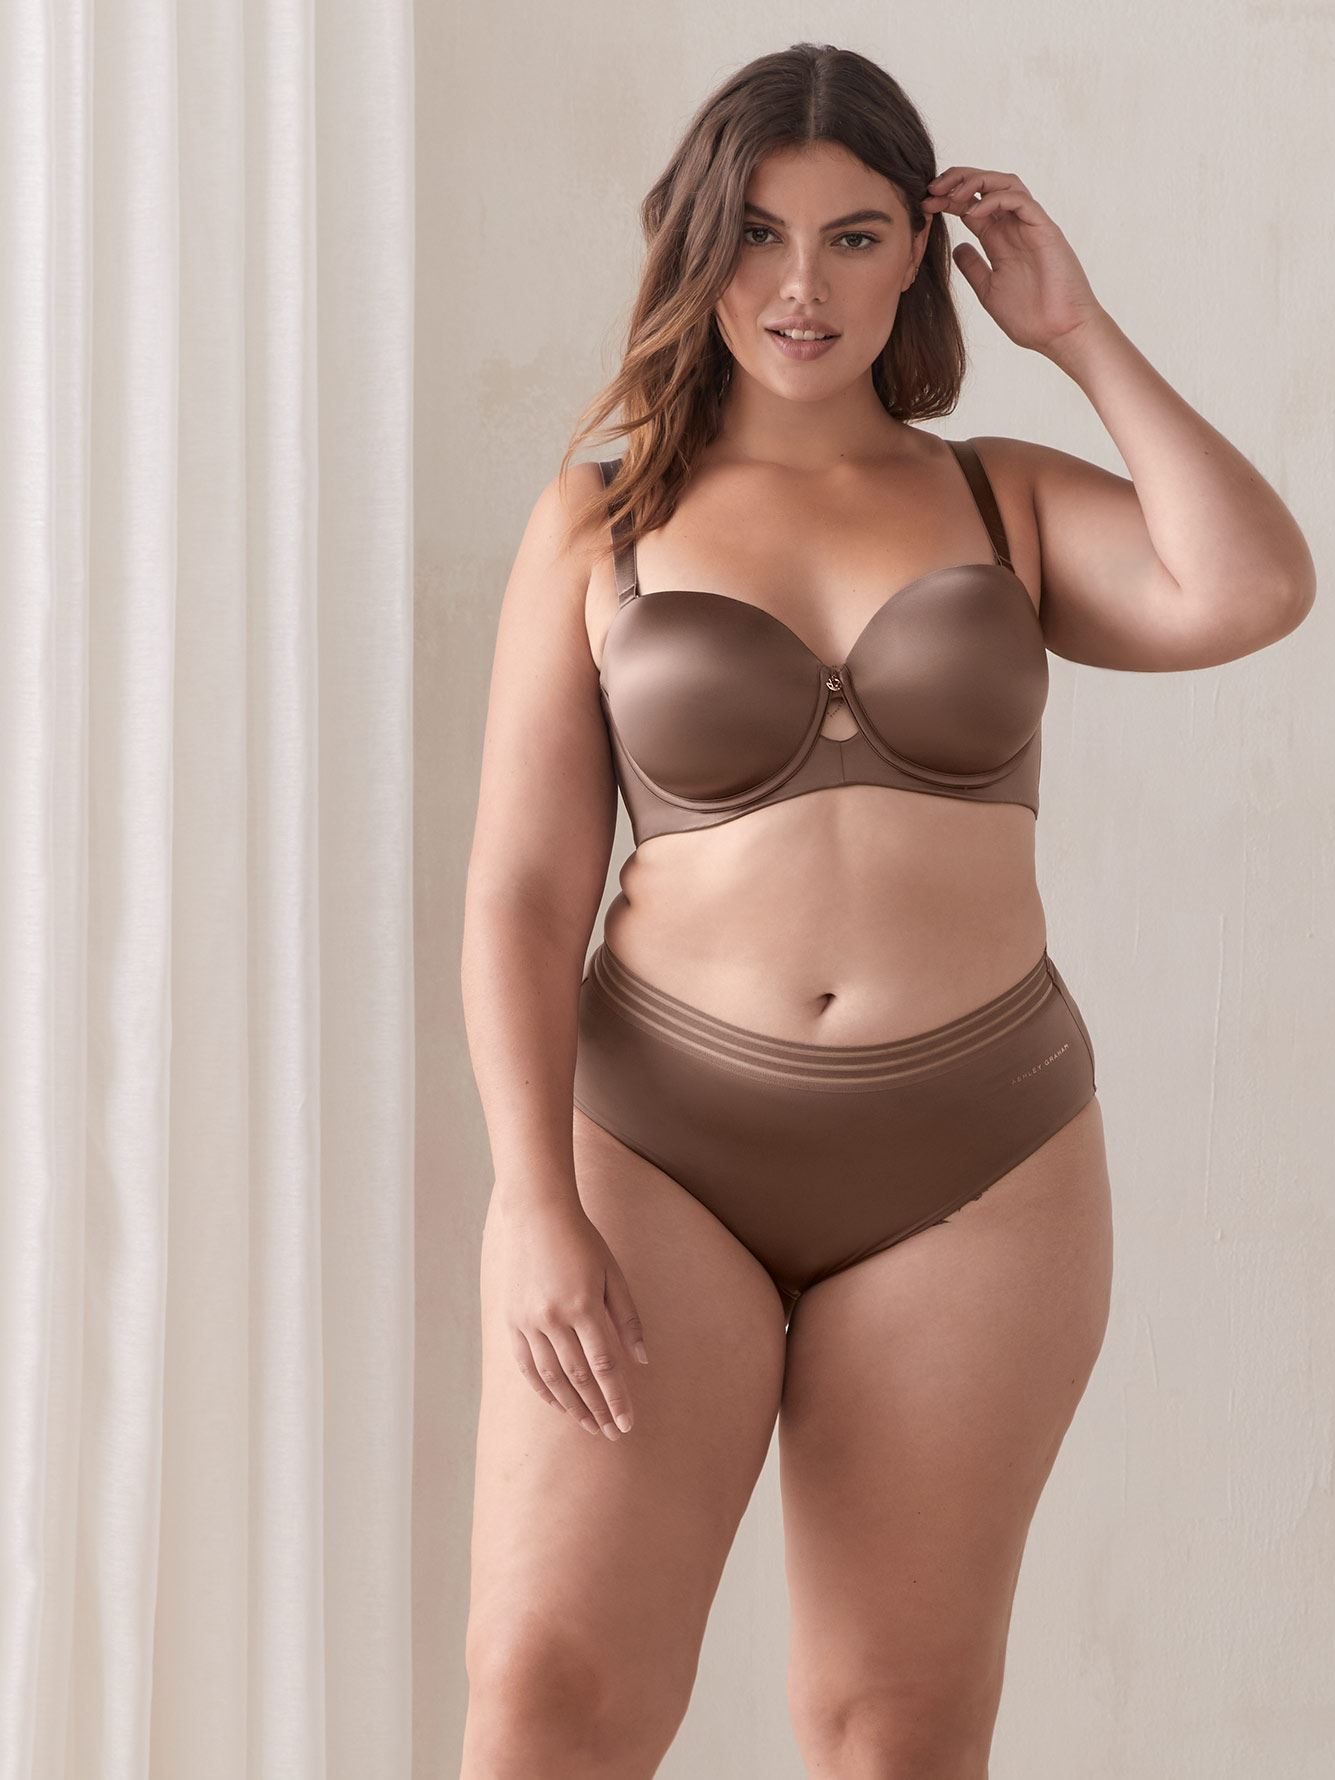 Strapless Phenomenon Bra, G & H Cups - Ashley Graham